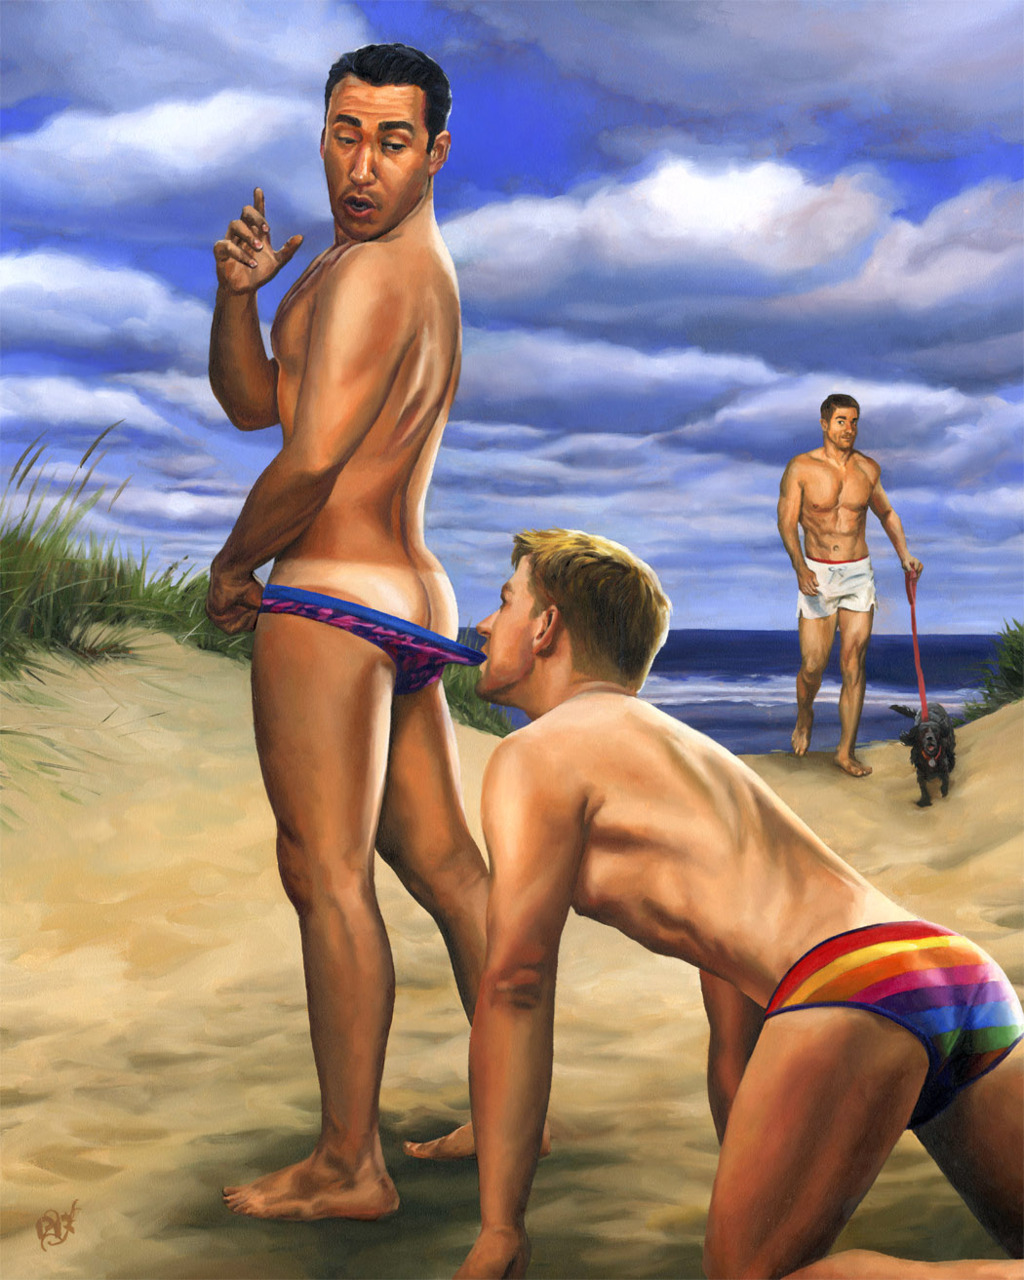 artqueer:  Paul RichmondBeach Bum, Starring Alan Ilaganoil painting